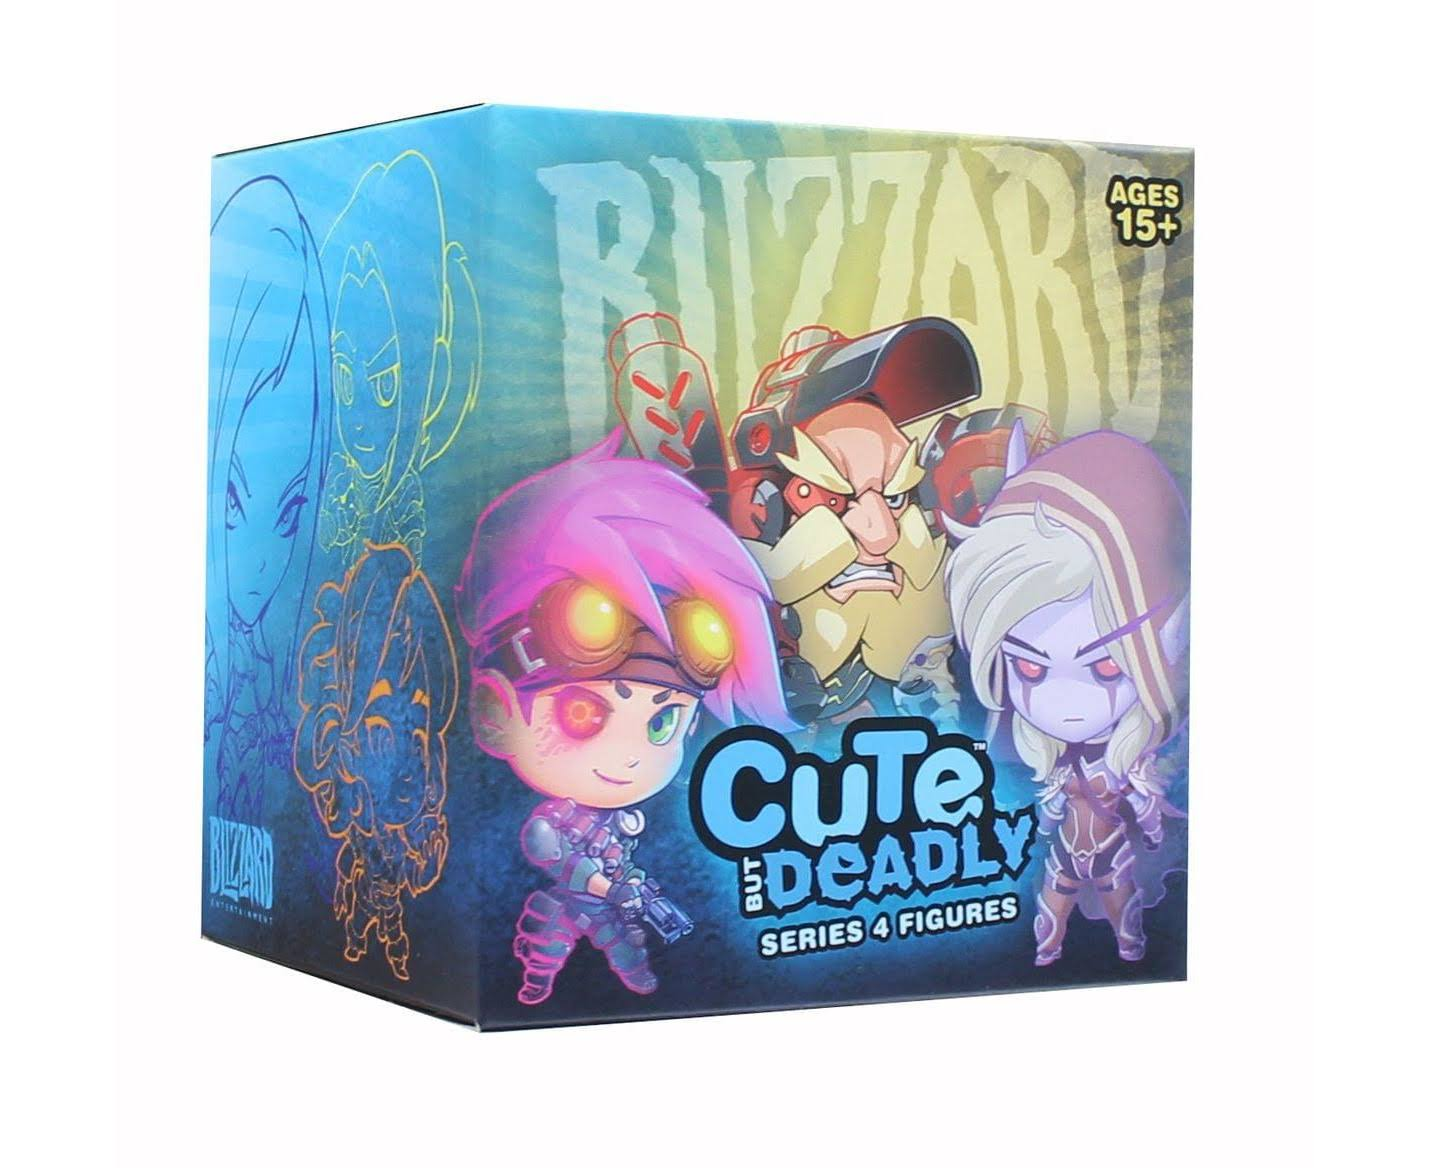 Blizzard Overwatch Blind Boxed Cute But Deadly Series 4 - One Random